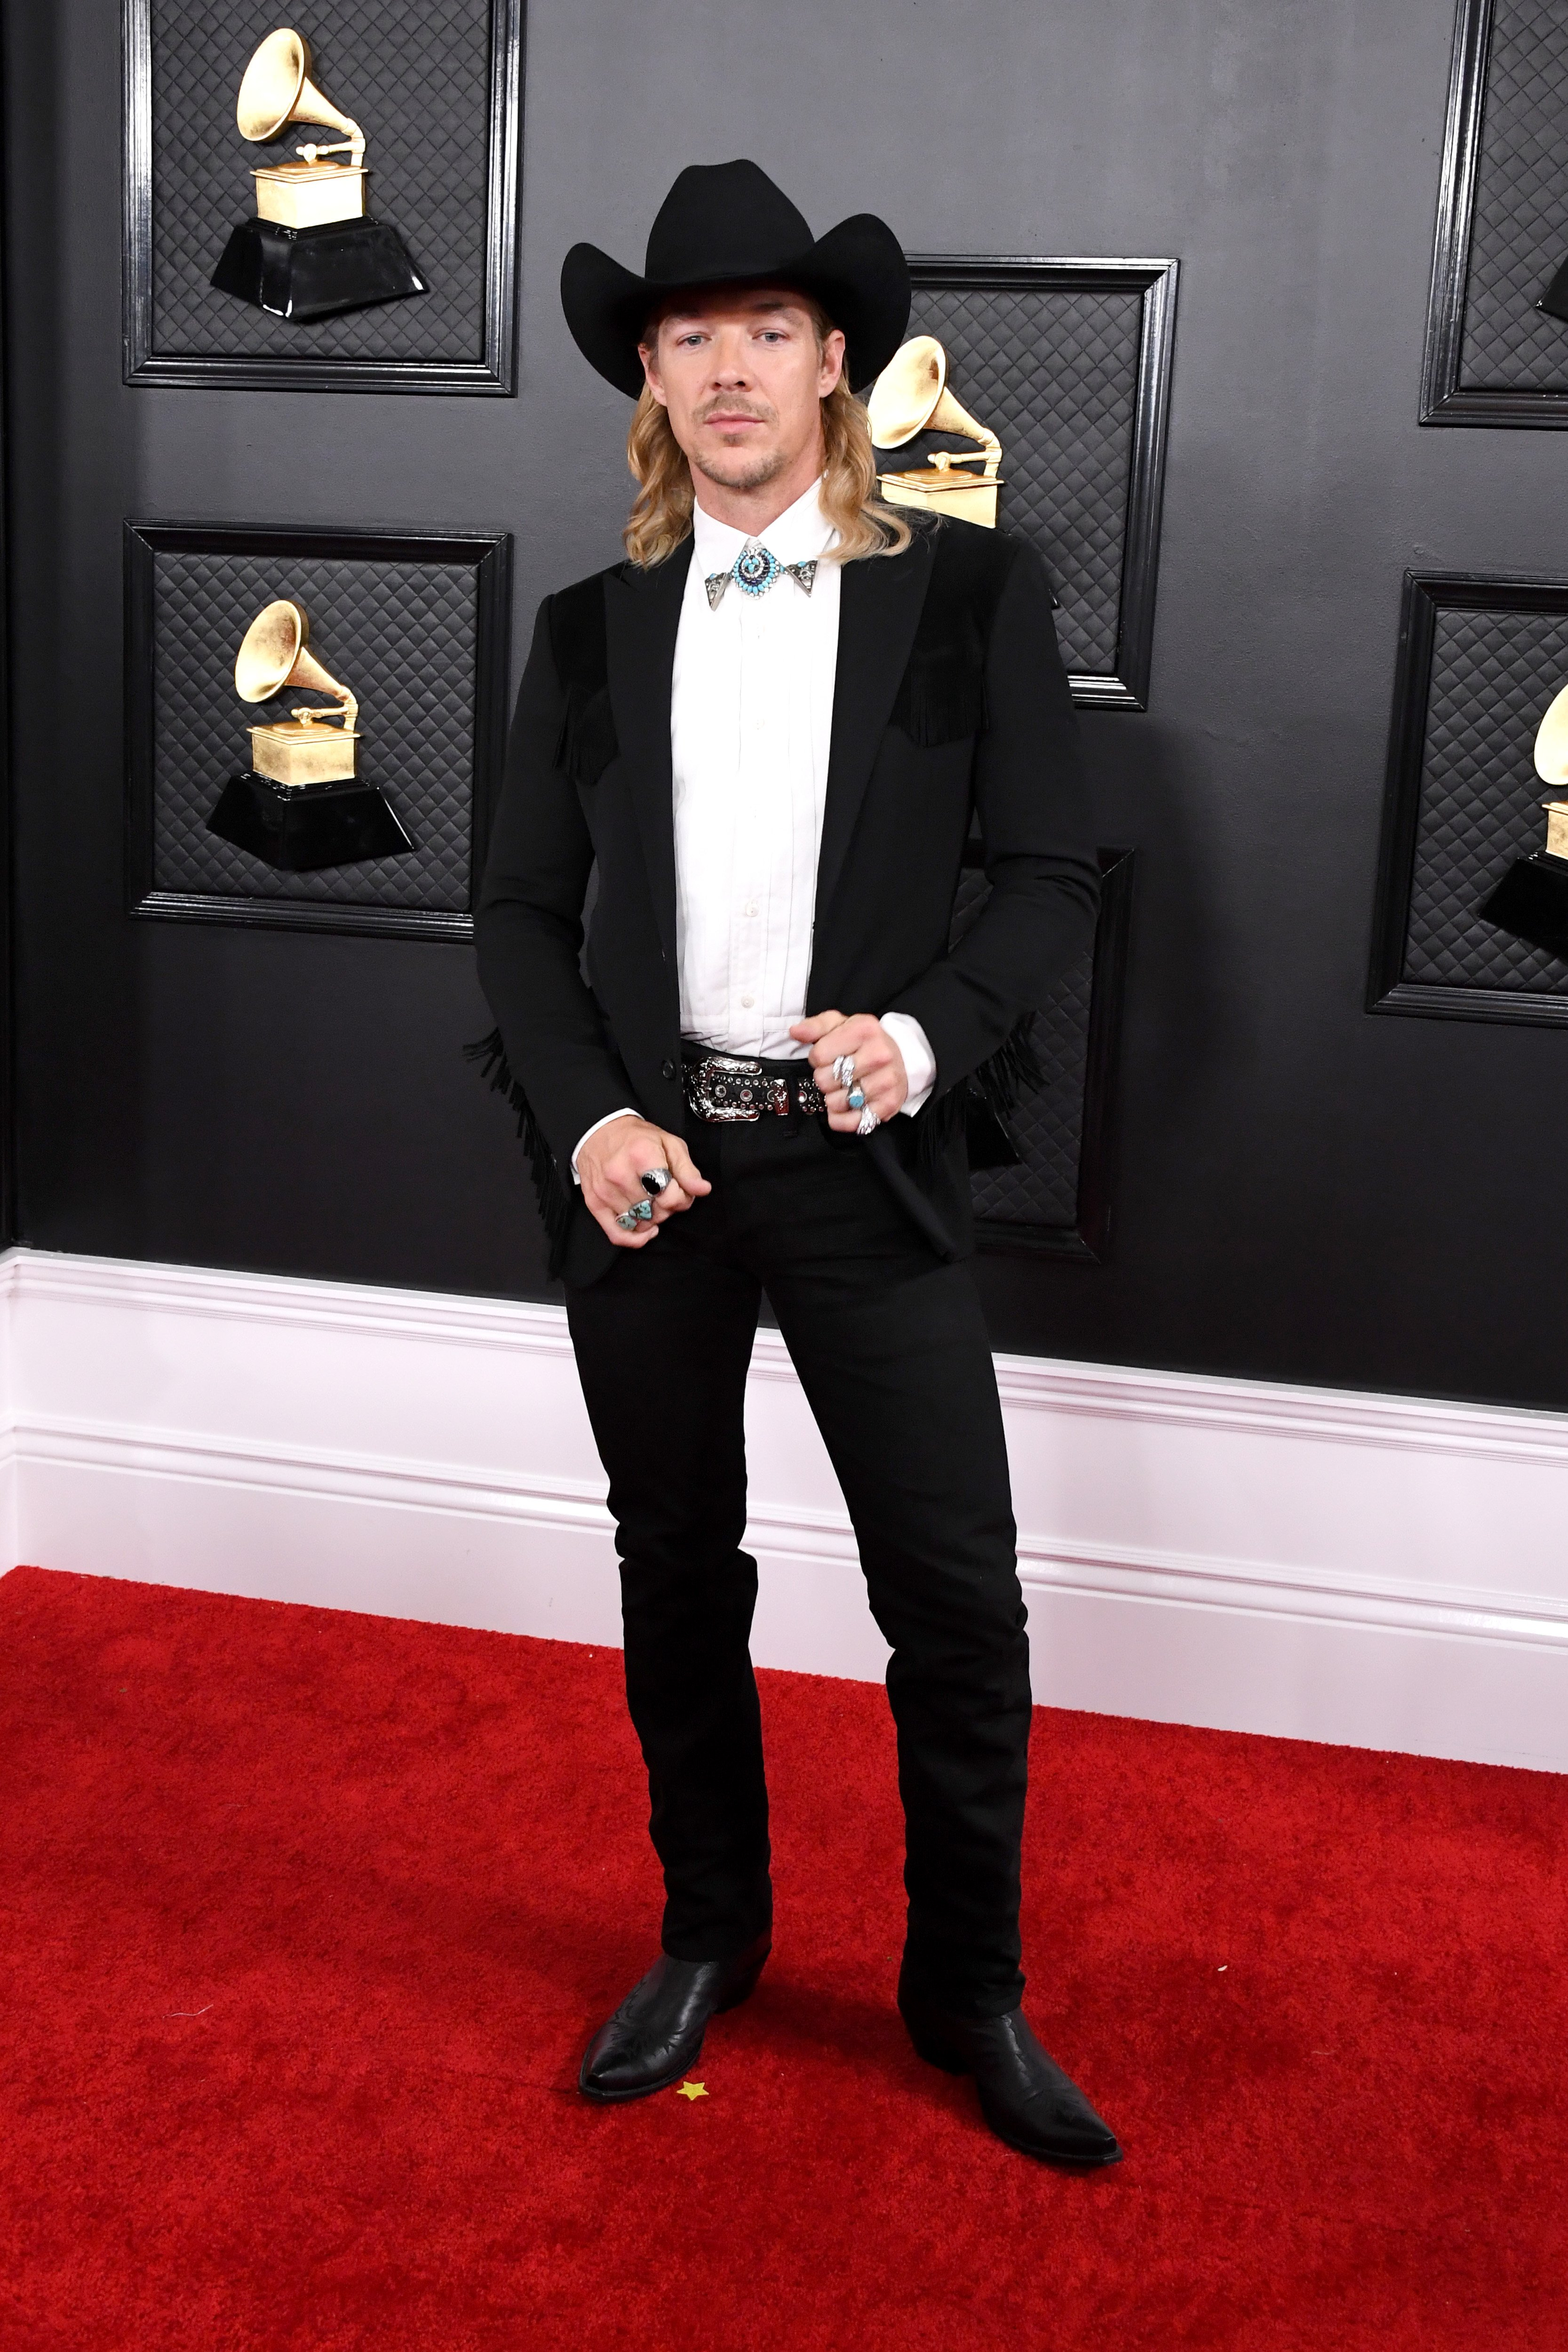 Diplo attends the 62nd Annual GRAMMY Awards at Staples Center on January 26, 2020 | Photo: GettyImages